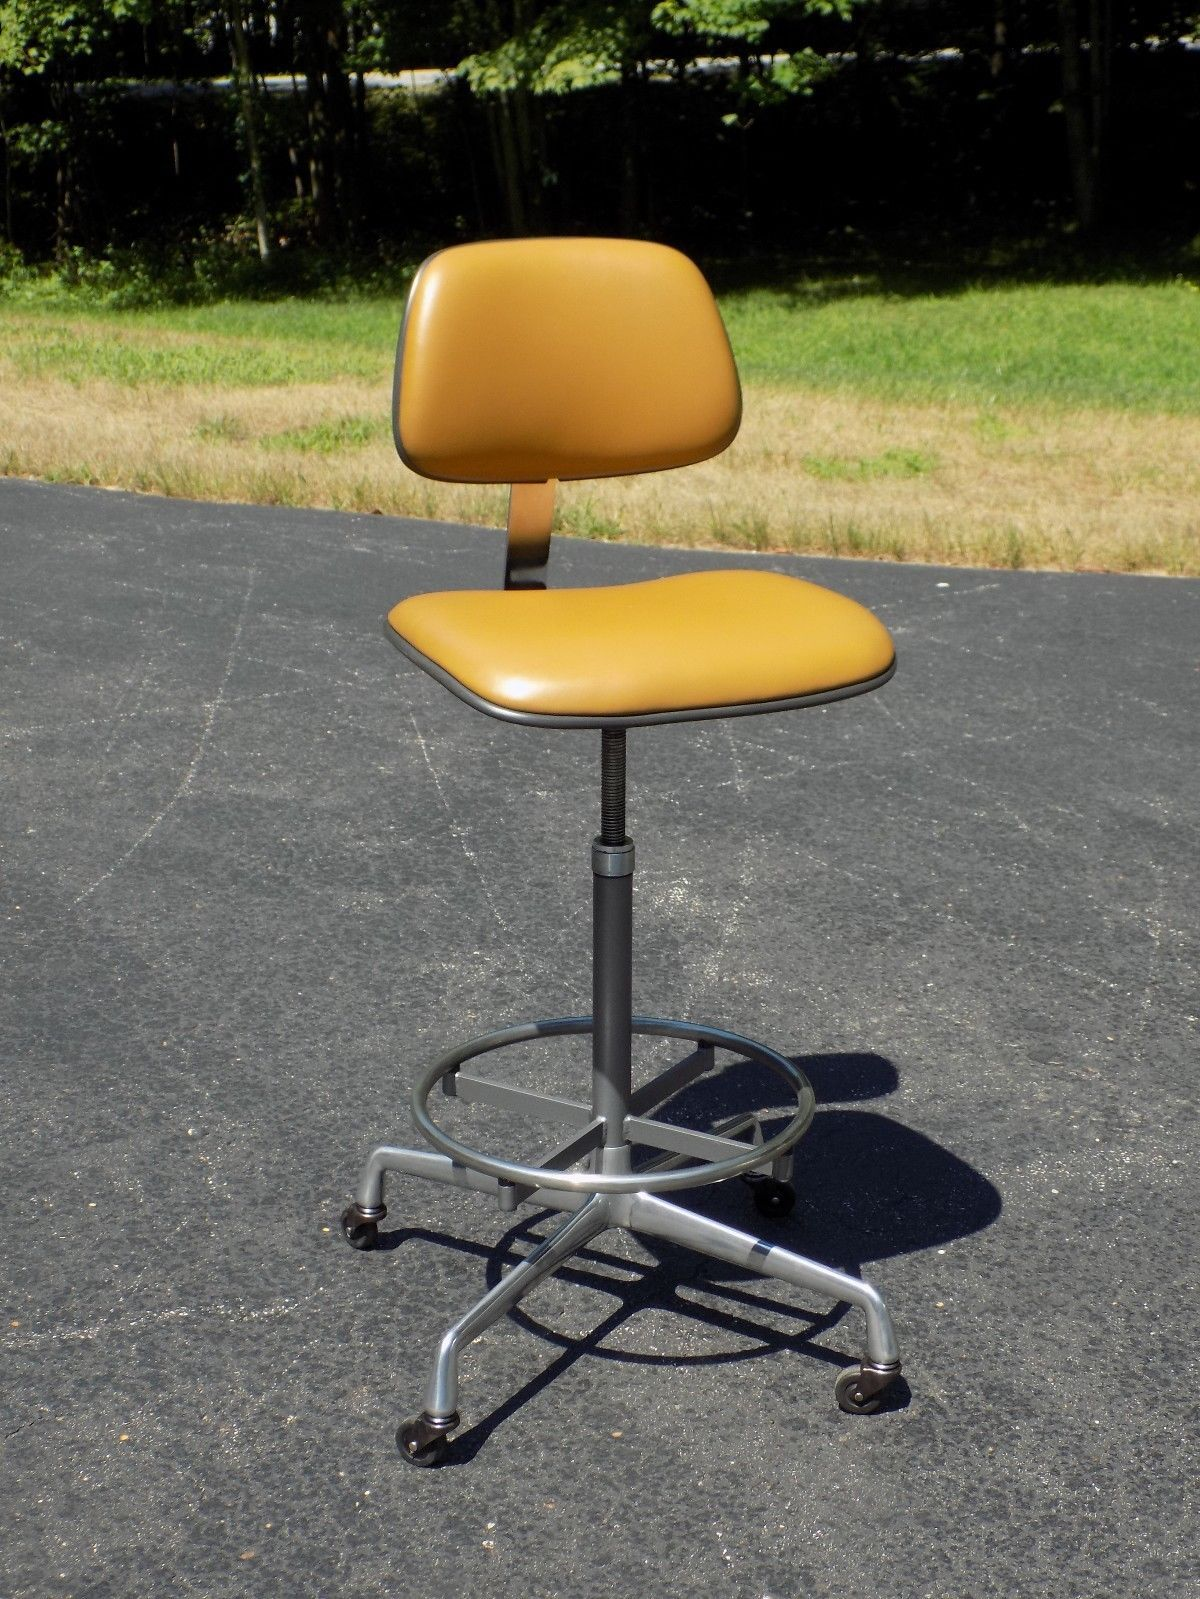 Flashback To The 1970 S With This Vintage Eames Herman Miller Charles Ray Eames Ec428 Drafting Task Stool Chair Vintage Eames Drafting Chair Ray Eames